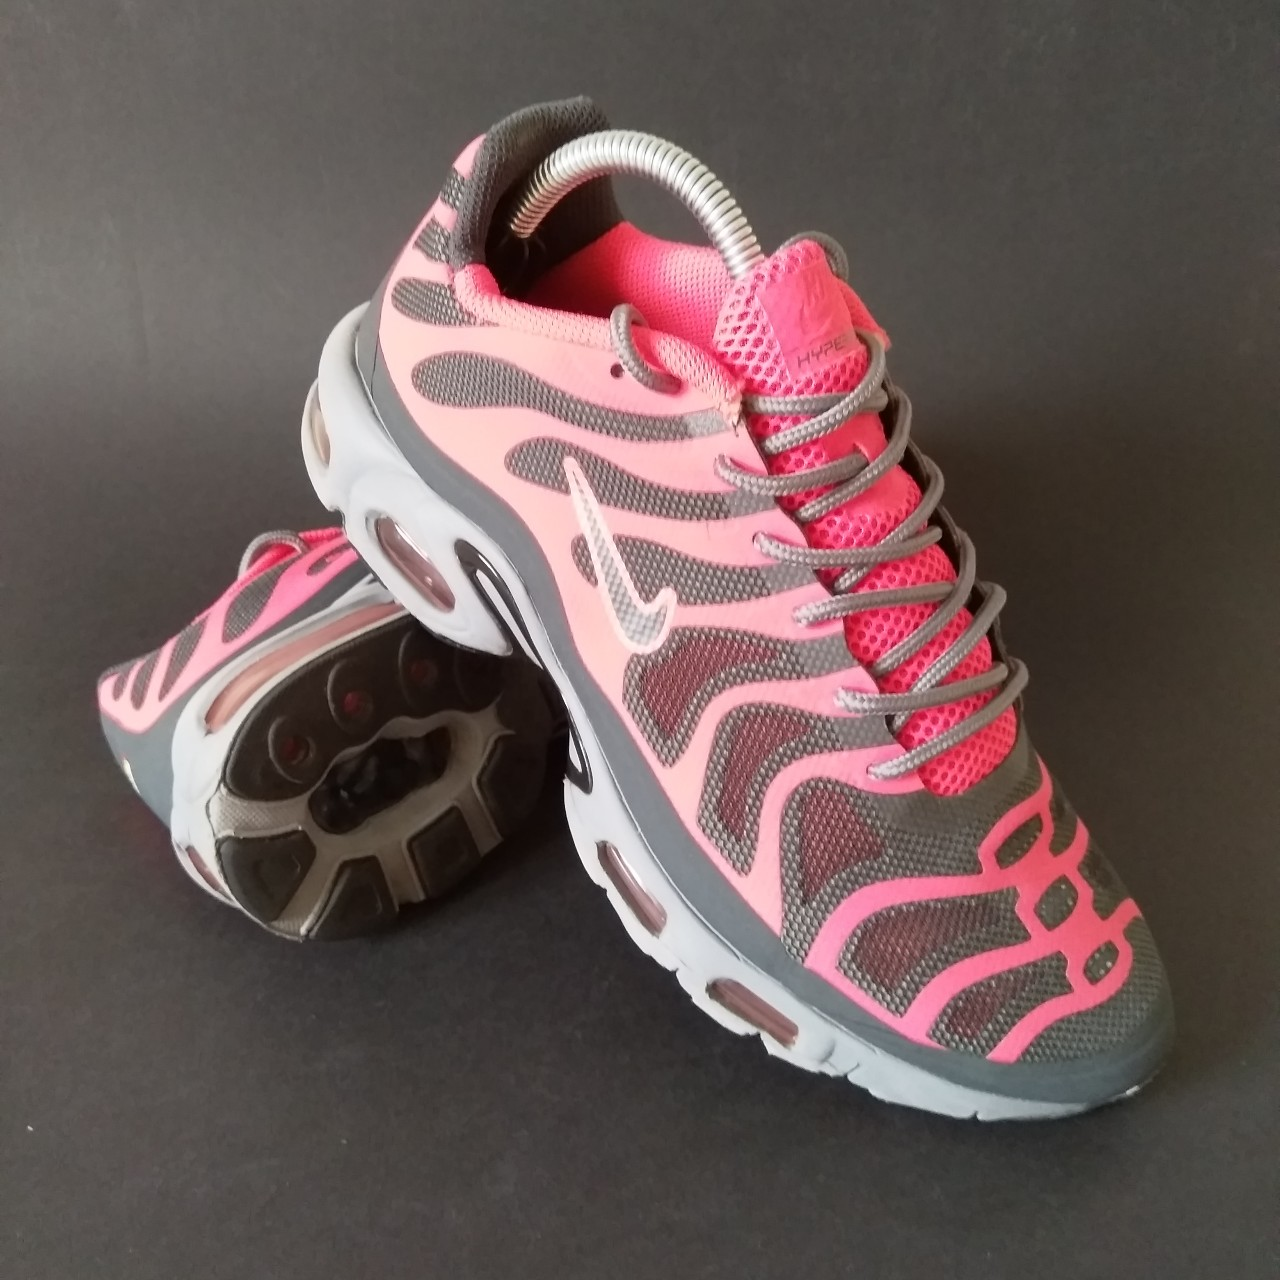 separation shoes 9d4e7 0eb8c Nike Air Max TN PLUS Hyperfuse solar red Hivis pink... - Depop